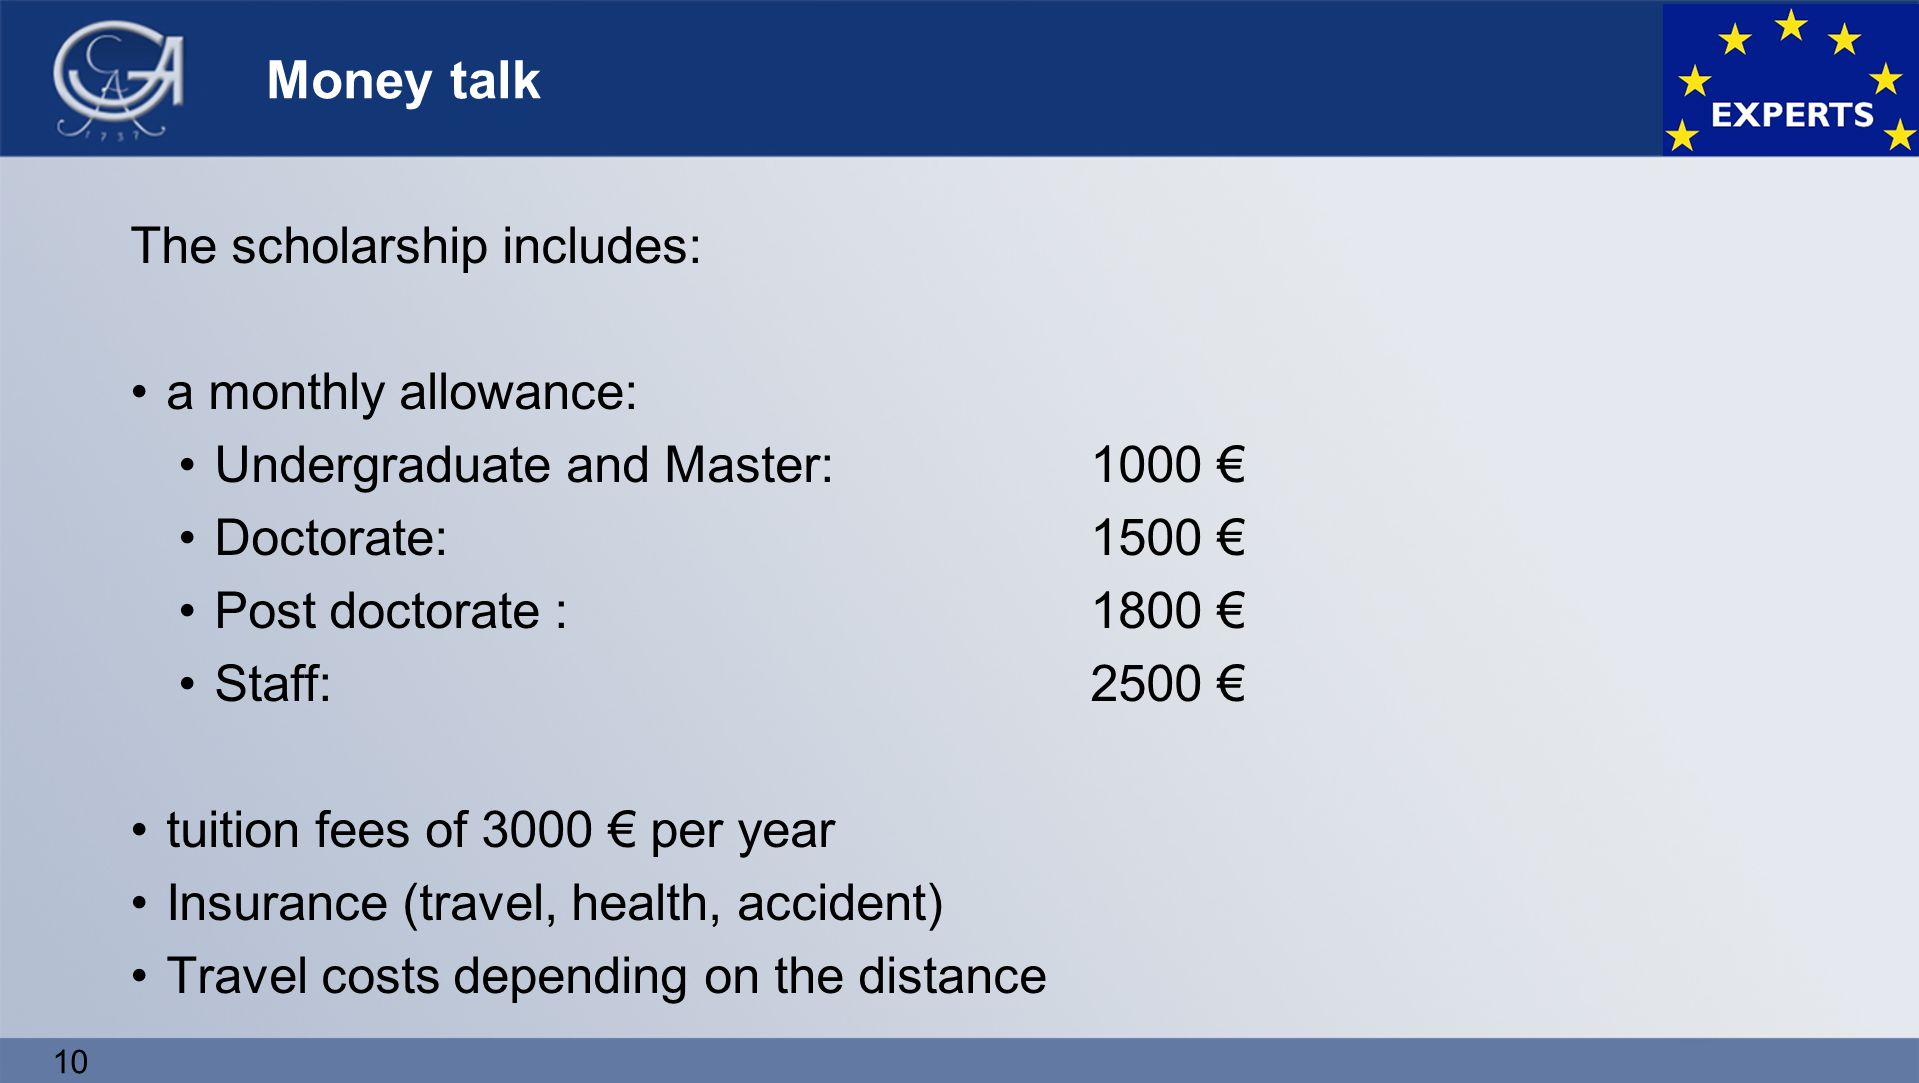 10 Money talk The scholarship includes: a monthly allowance: Undergraduate and Master: 1000 € Doctorate: 1500 € Post doctorate : 1800 € Staff:2500 € tuition fees of 3000 € per year Insurance (travel, health, accident) Travel costs depending on the distance